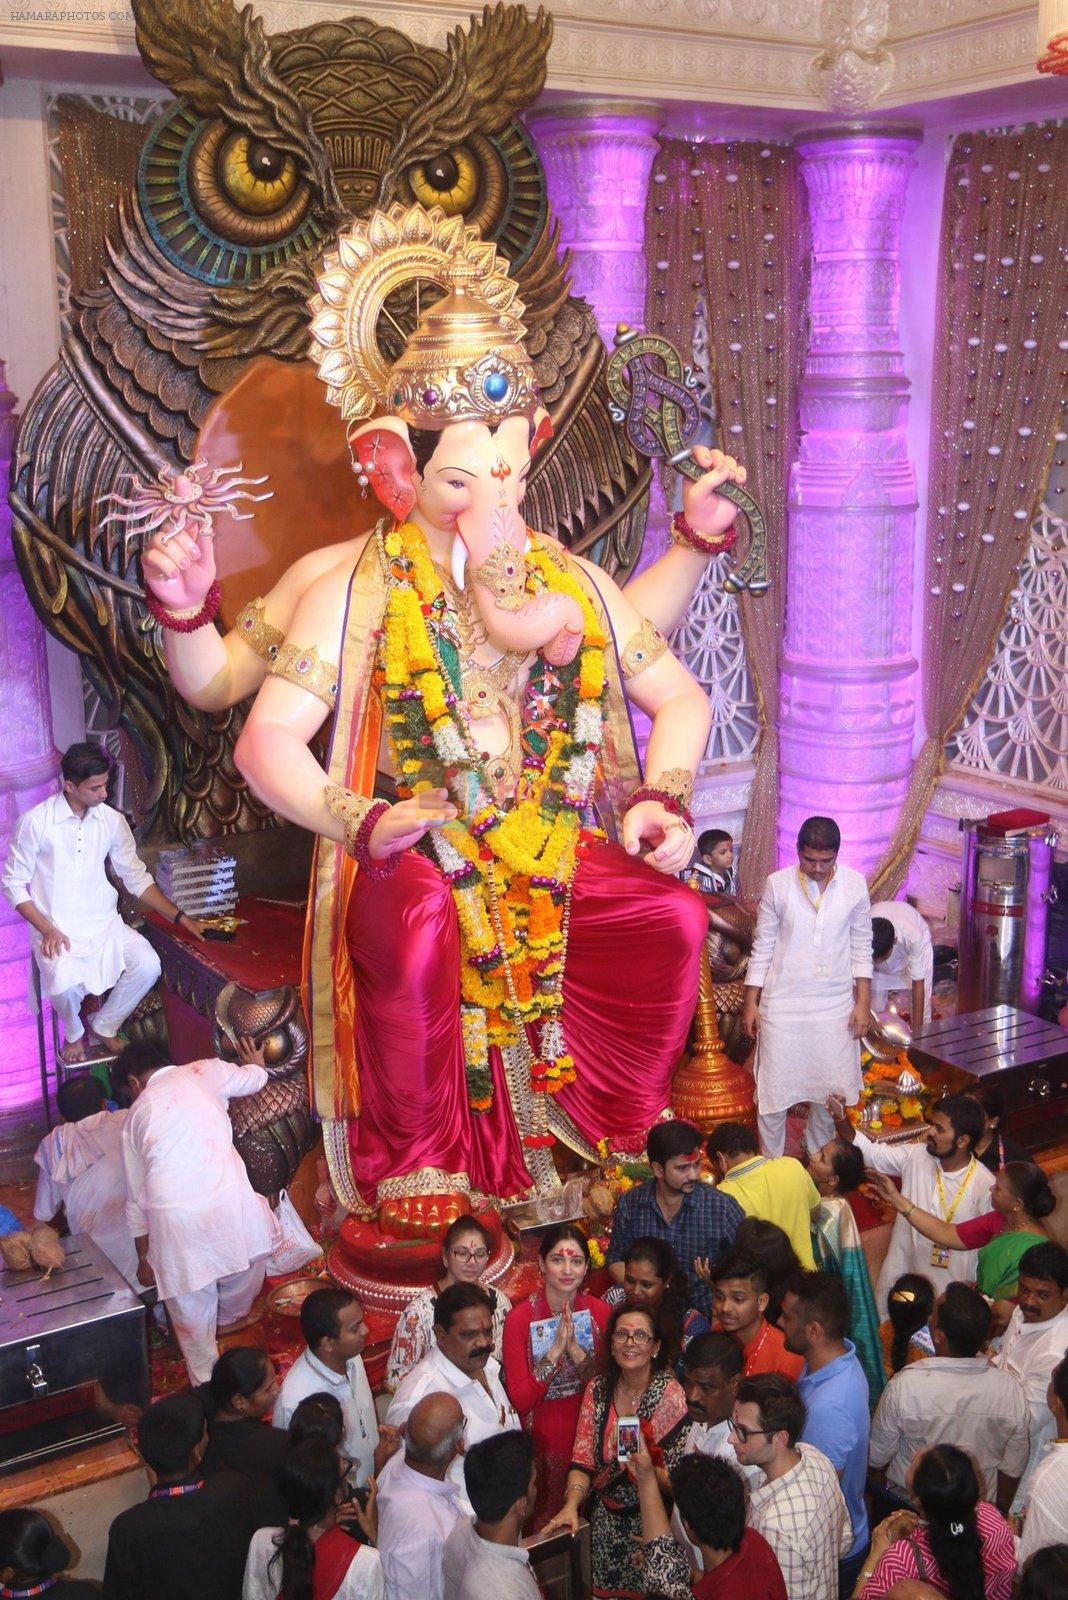 Tammanah Bhatia at Lalbaugcha Raja on 11th Sept 2016